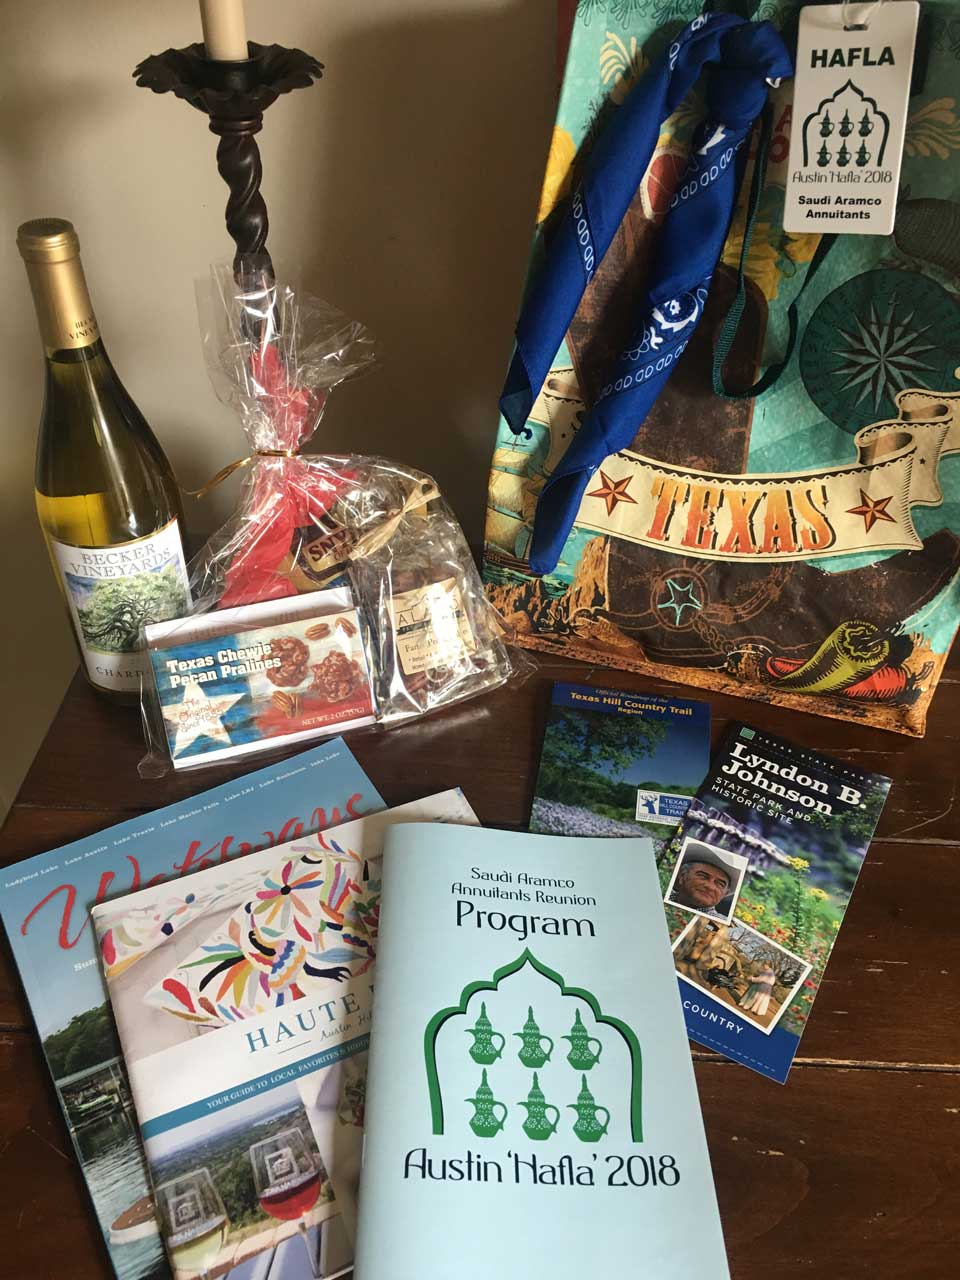 Gift bag goodies included Texas shopping bag, a blue or red bandana, Hafla luggage tag, park and trail maps, Austin magazines, the Hafla program and directory, Texas treats and your choice of Texas Hill Country's own Becker Vineyards red or white wine.